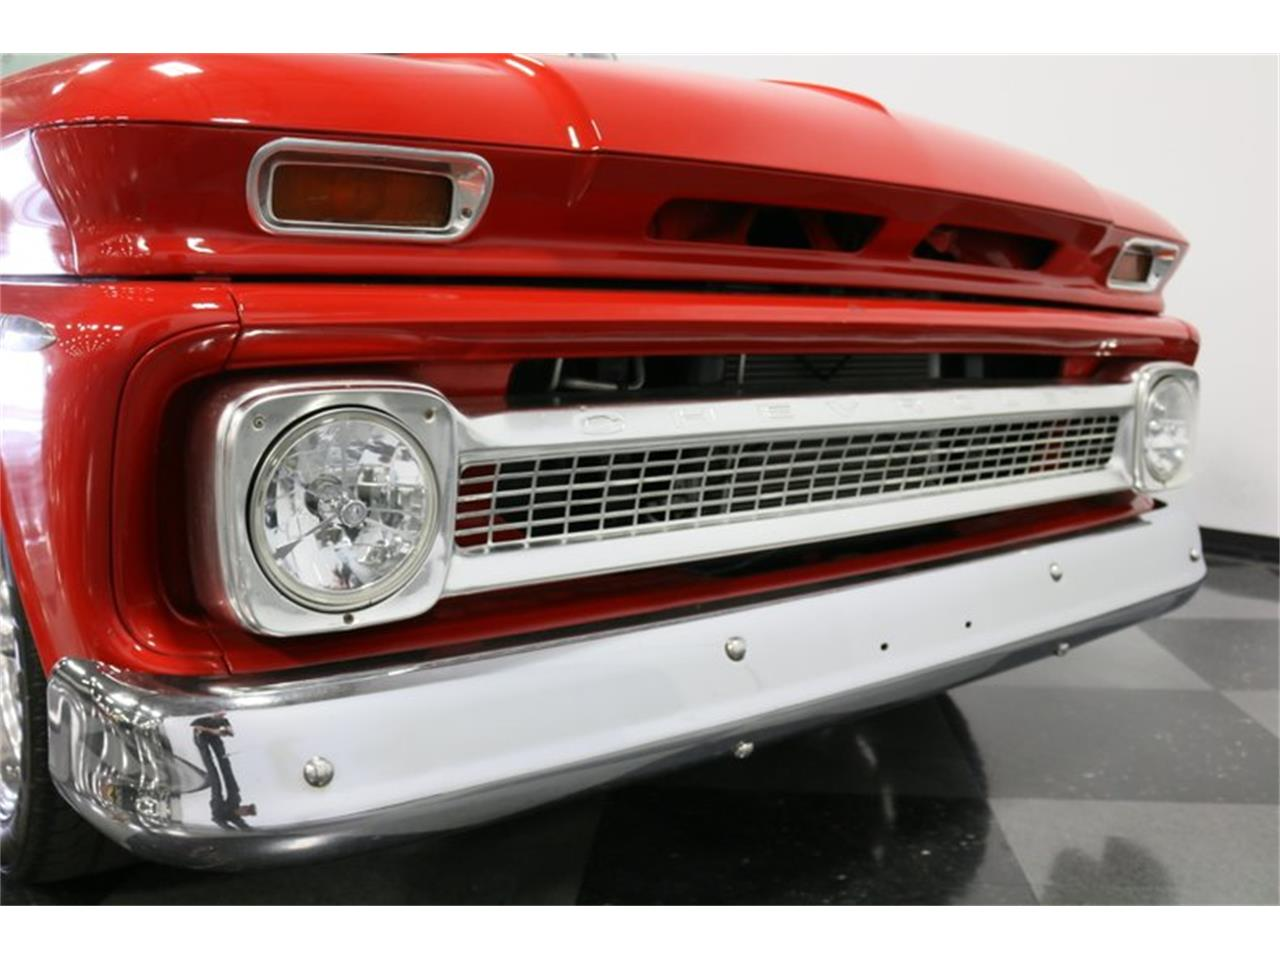 Large Picture of '66 C10 - $32,995.00 Offered by Streetside Classics - Dallas / Fort Worth - PVCV